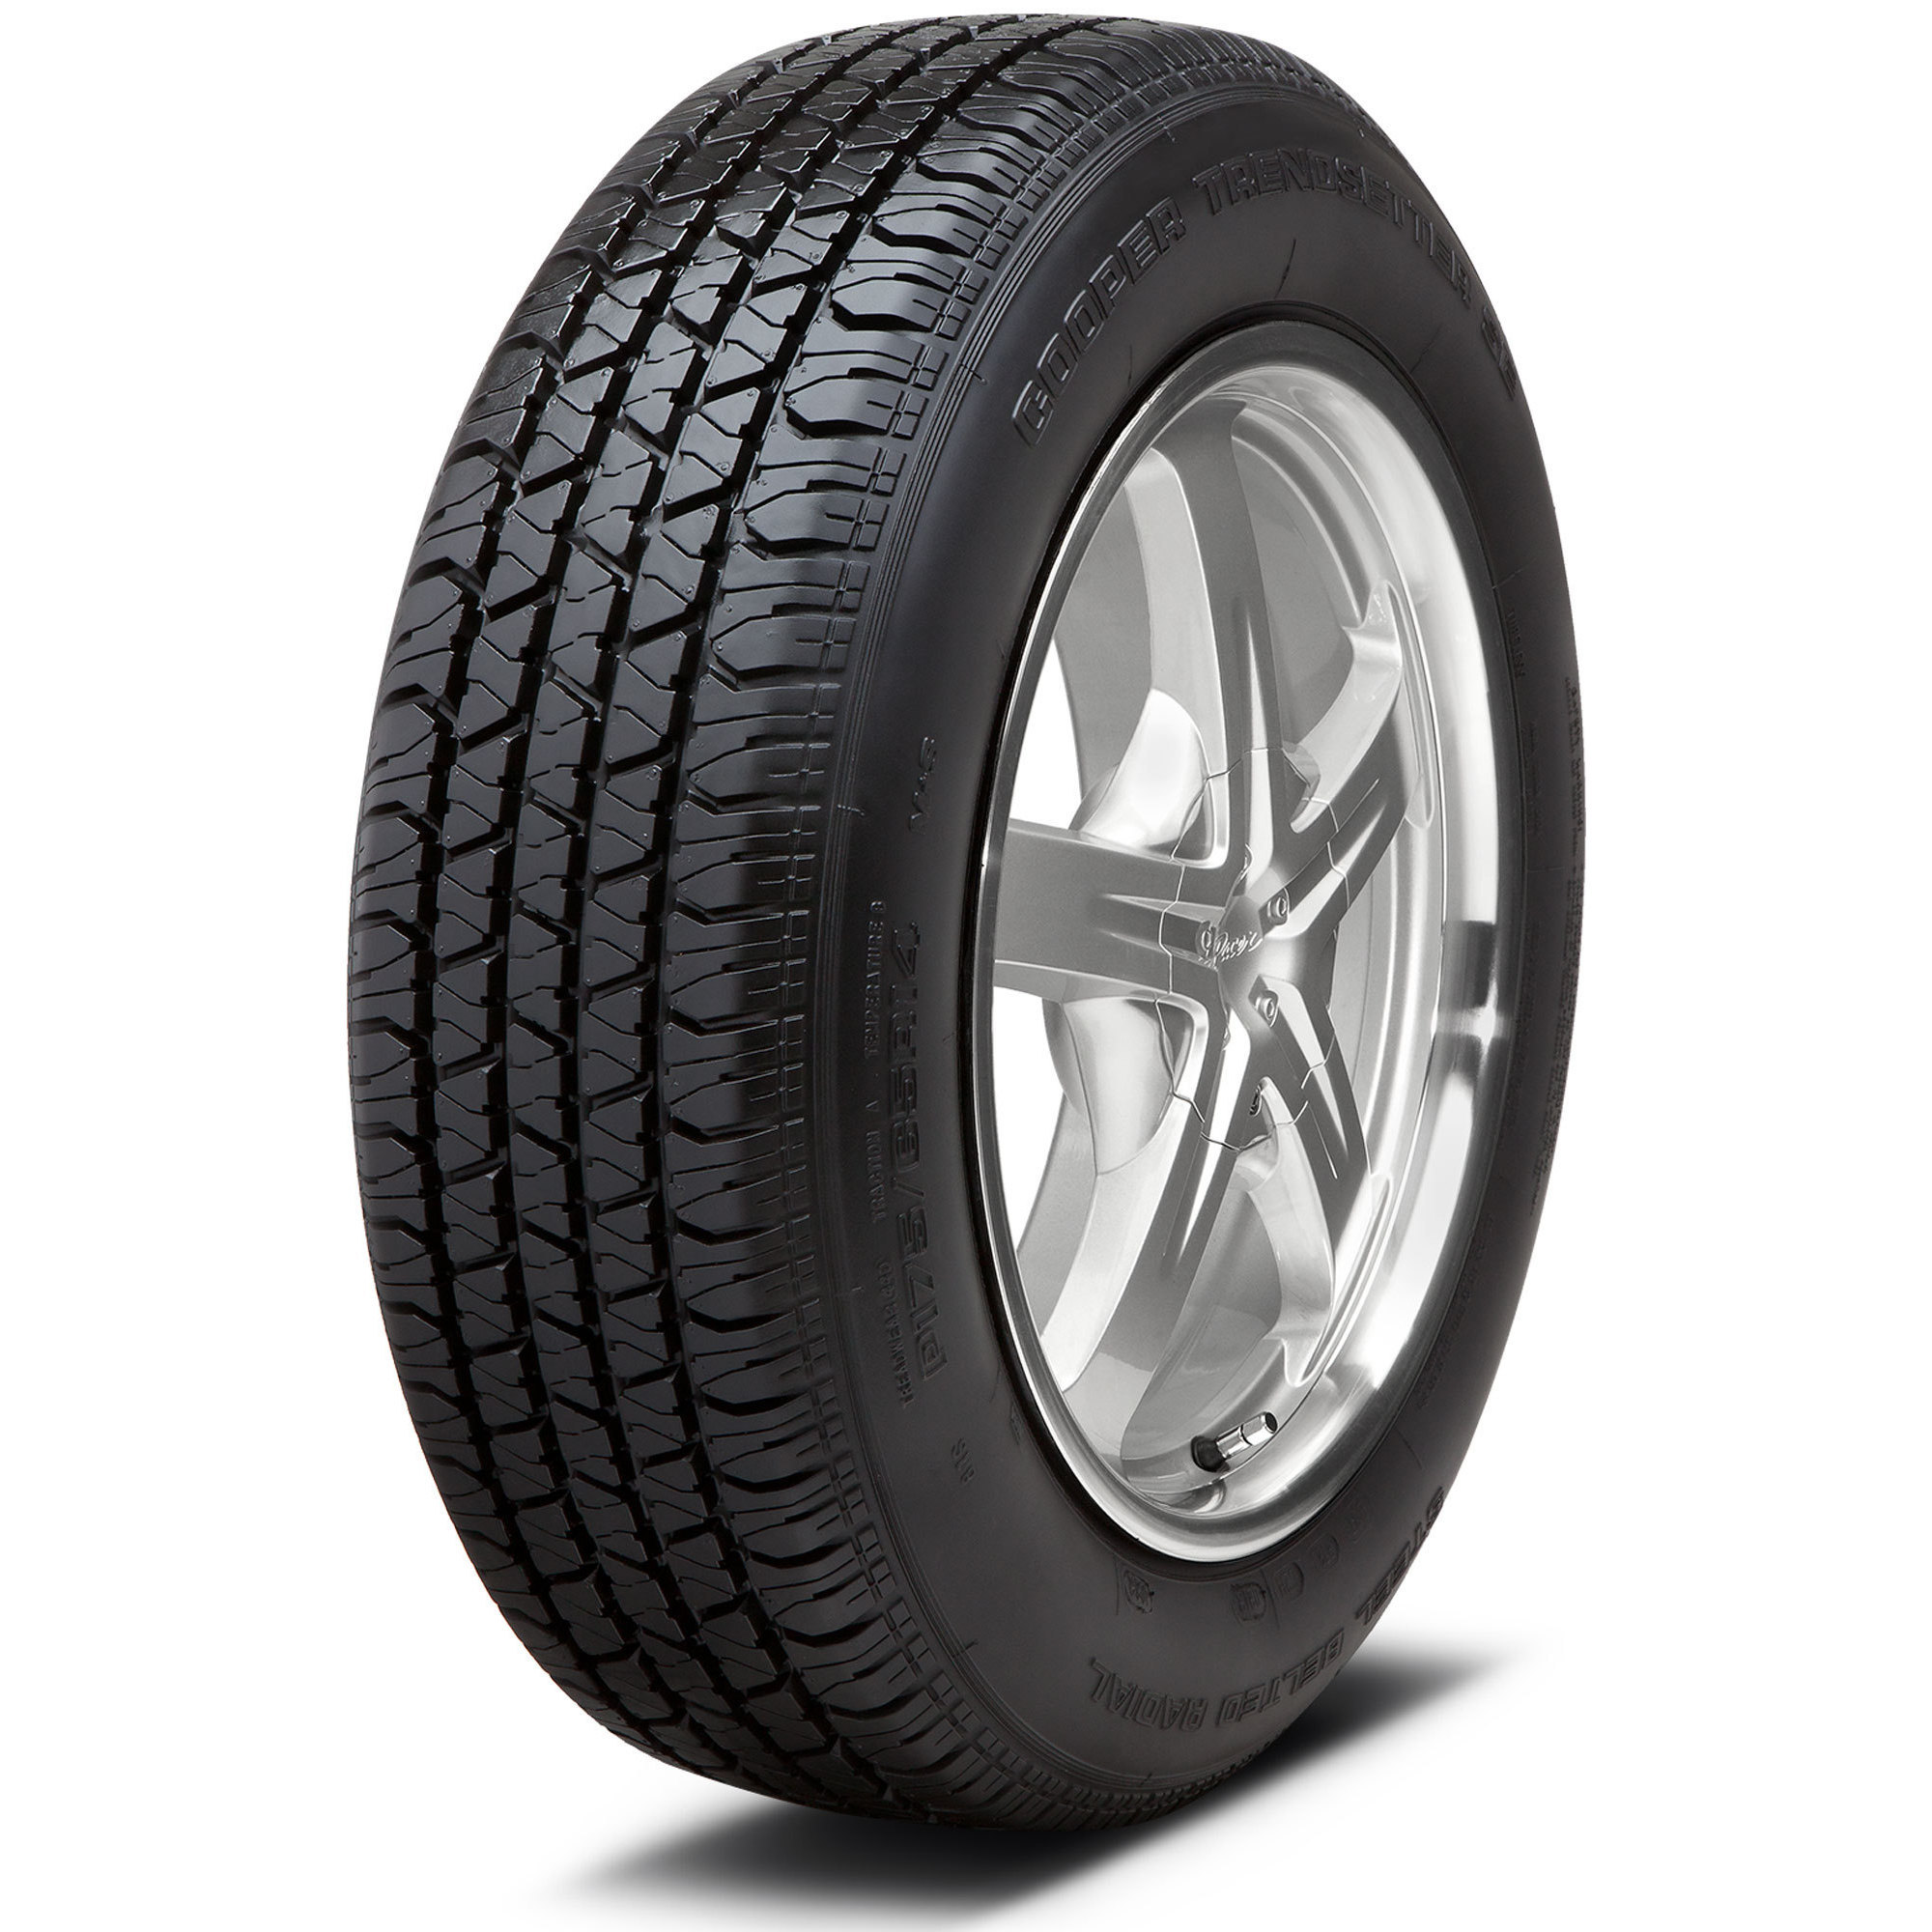 trend setter Tires and auto repair in portland, or welcome to trendsetters truck and auto are your tires bald is your car pulling to the right have you gone 3,000 miles since your last oil change.